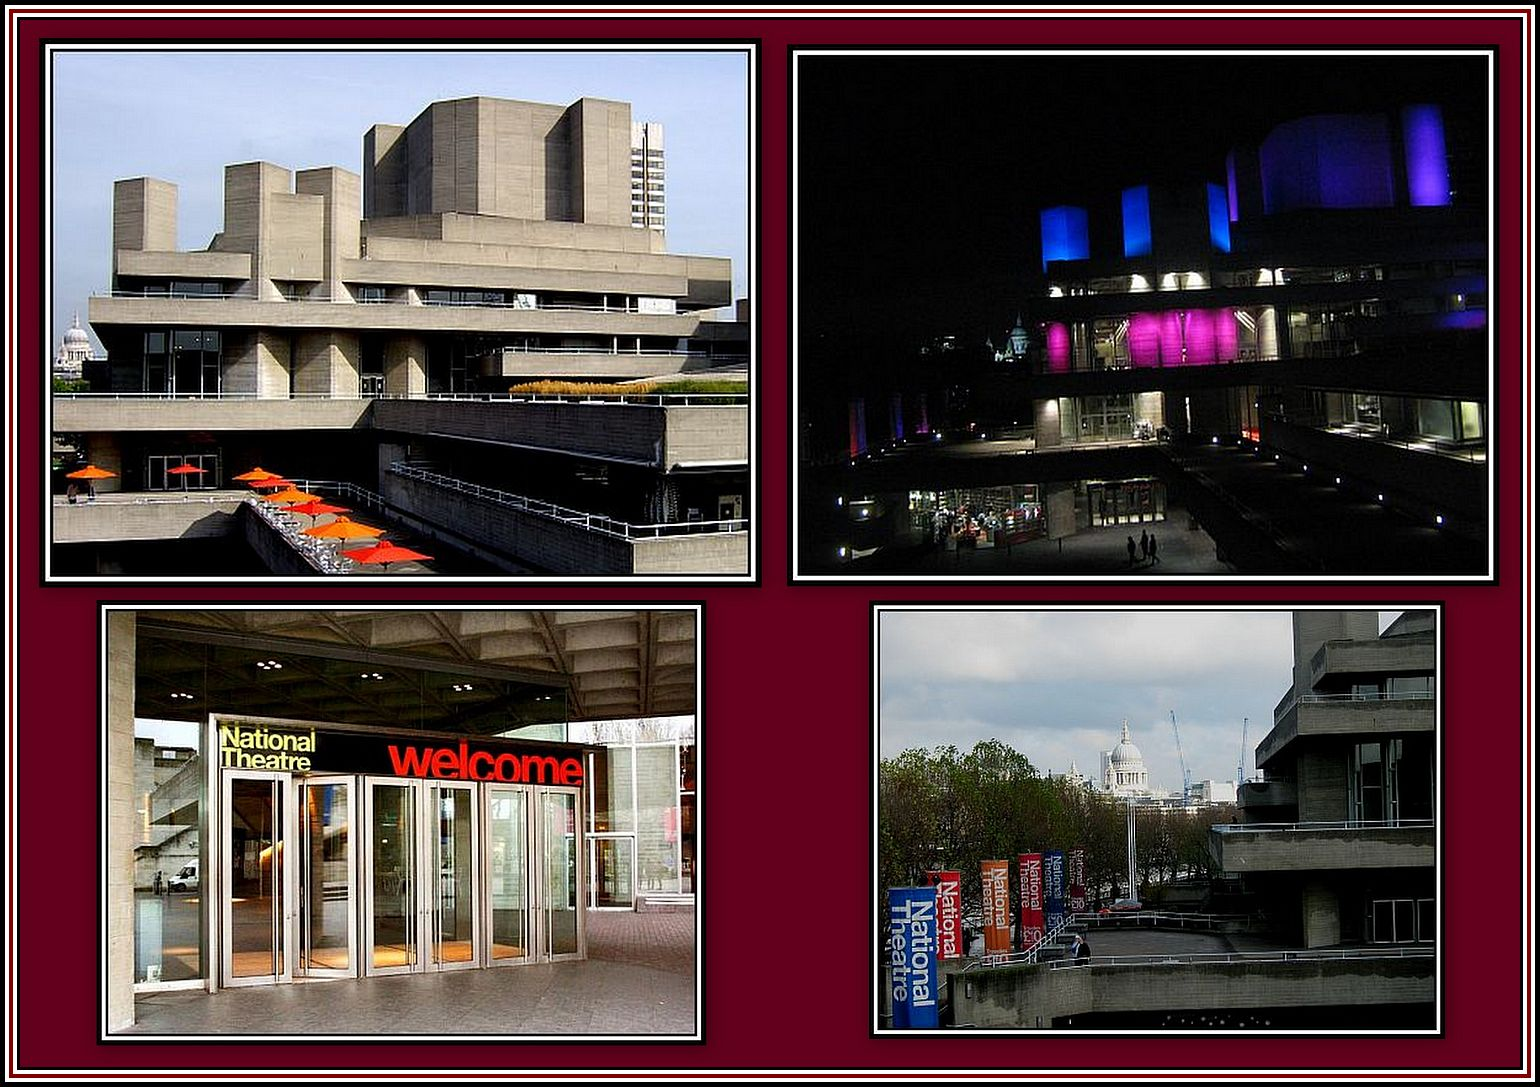 The National Theatre Collage